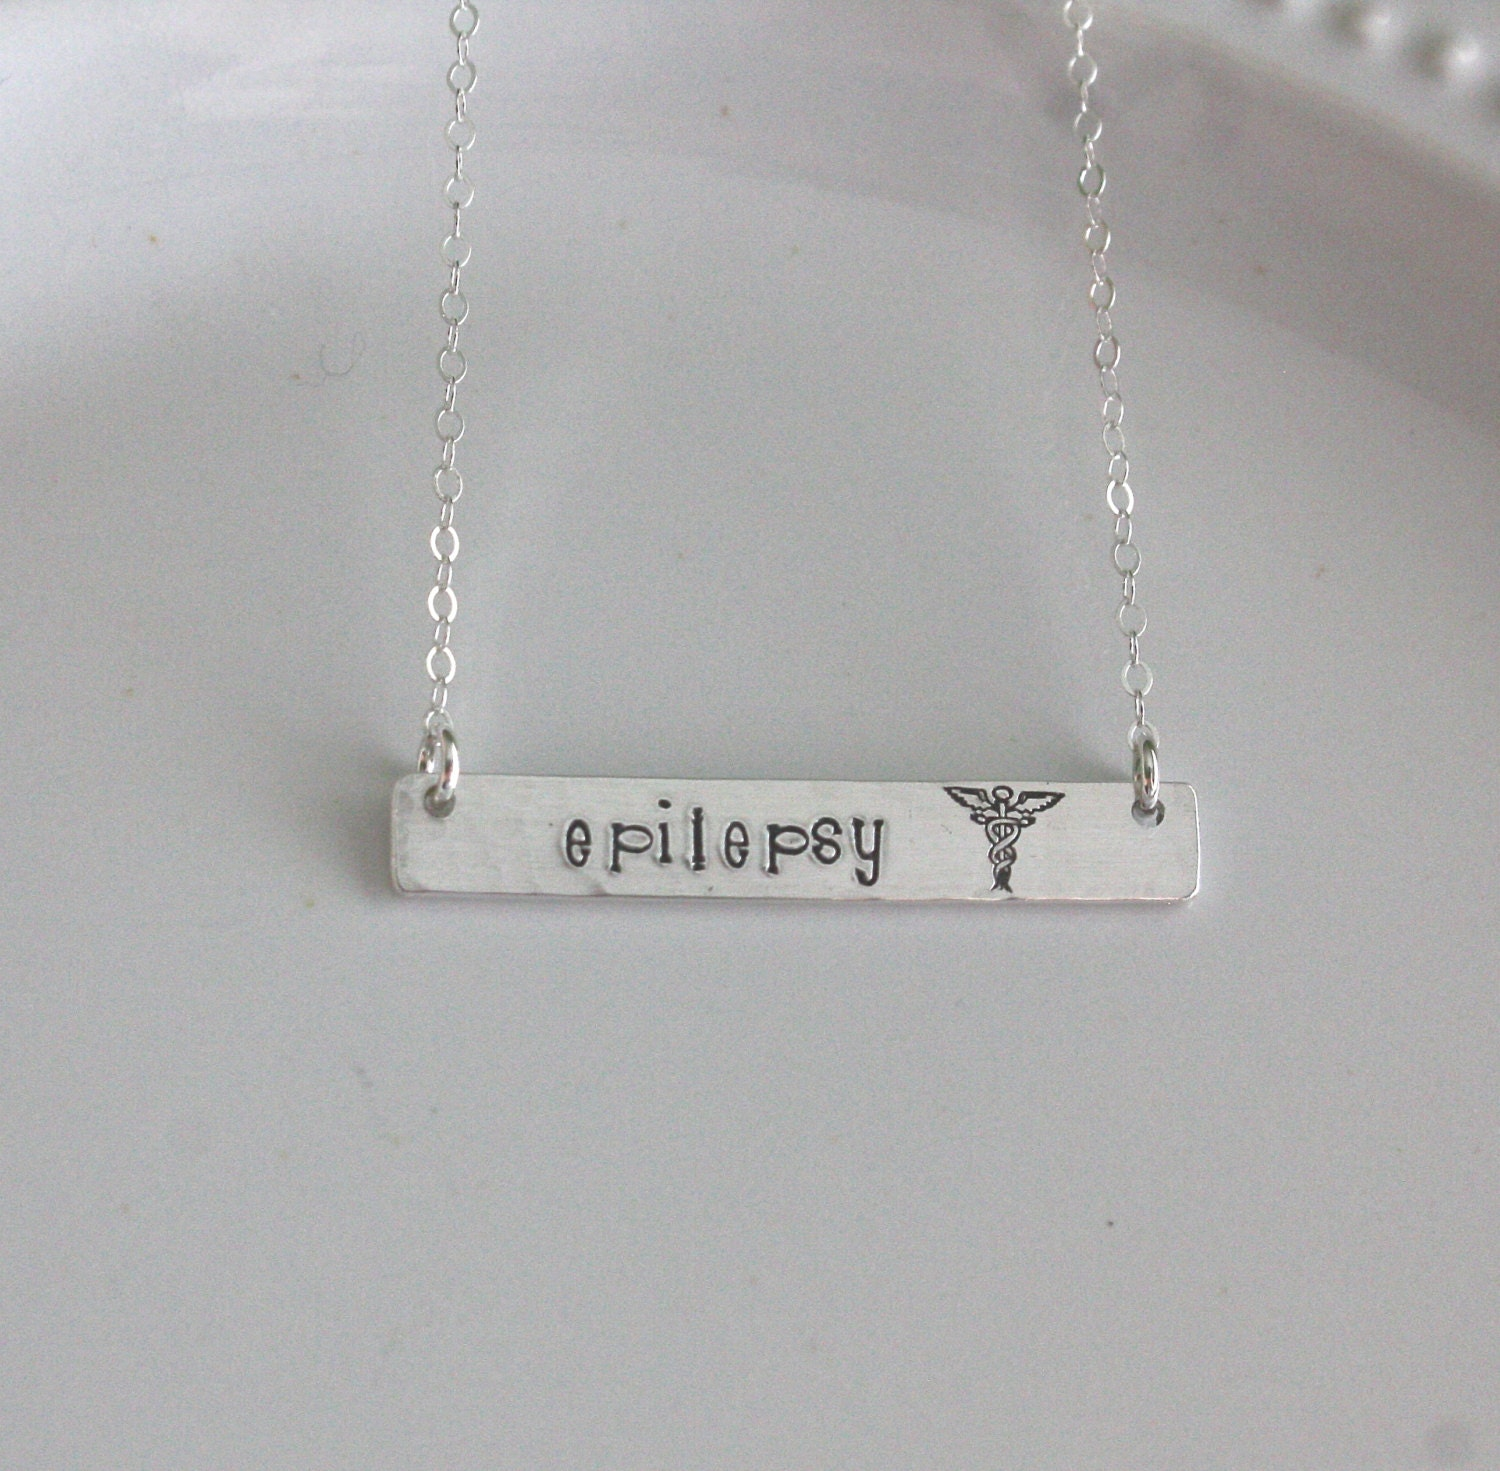 Medic Alert Necklace: Medical ID Jewelry Medic Alert Necklace Sterling Silver